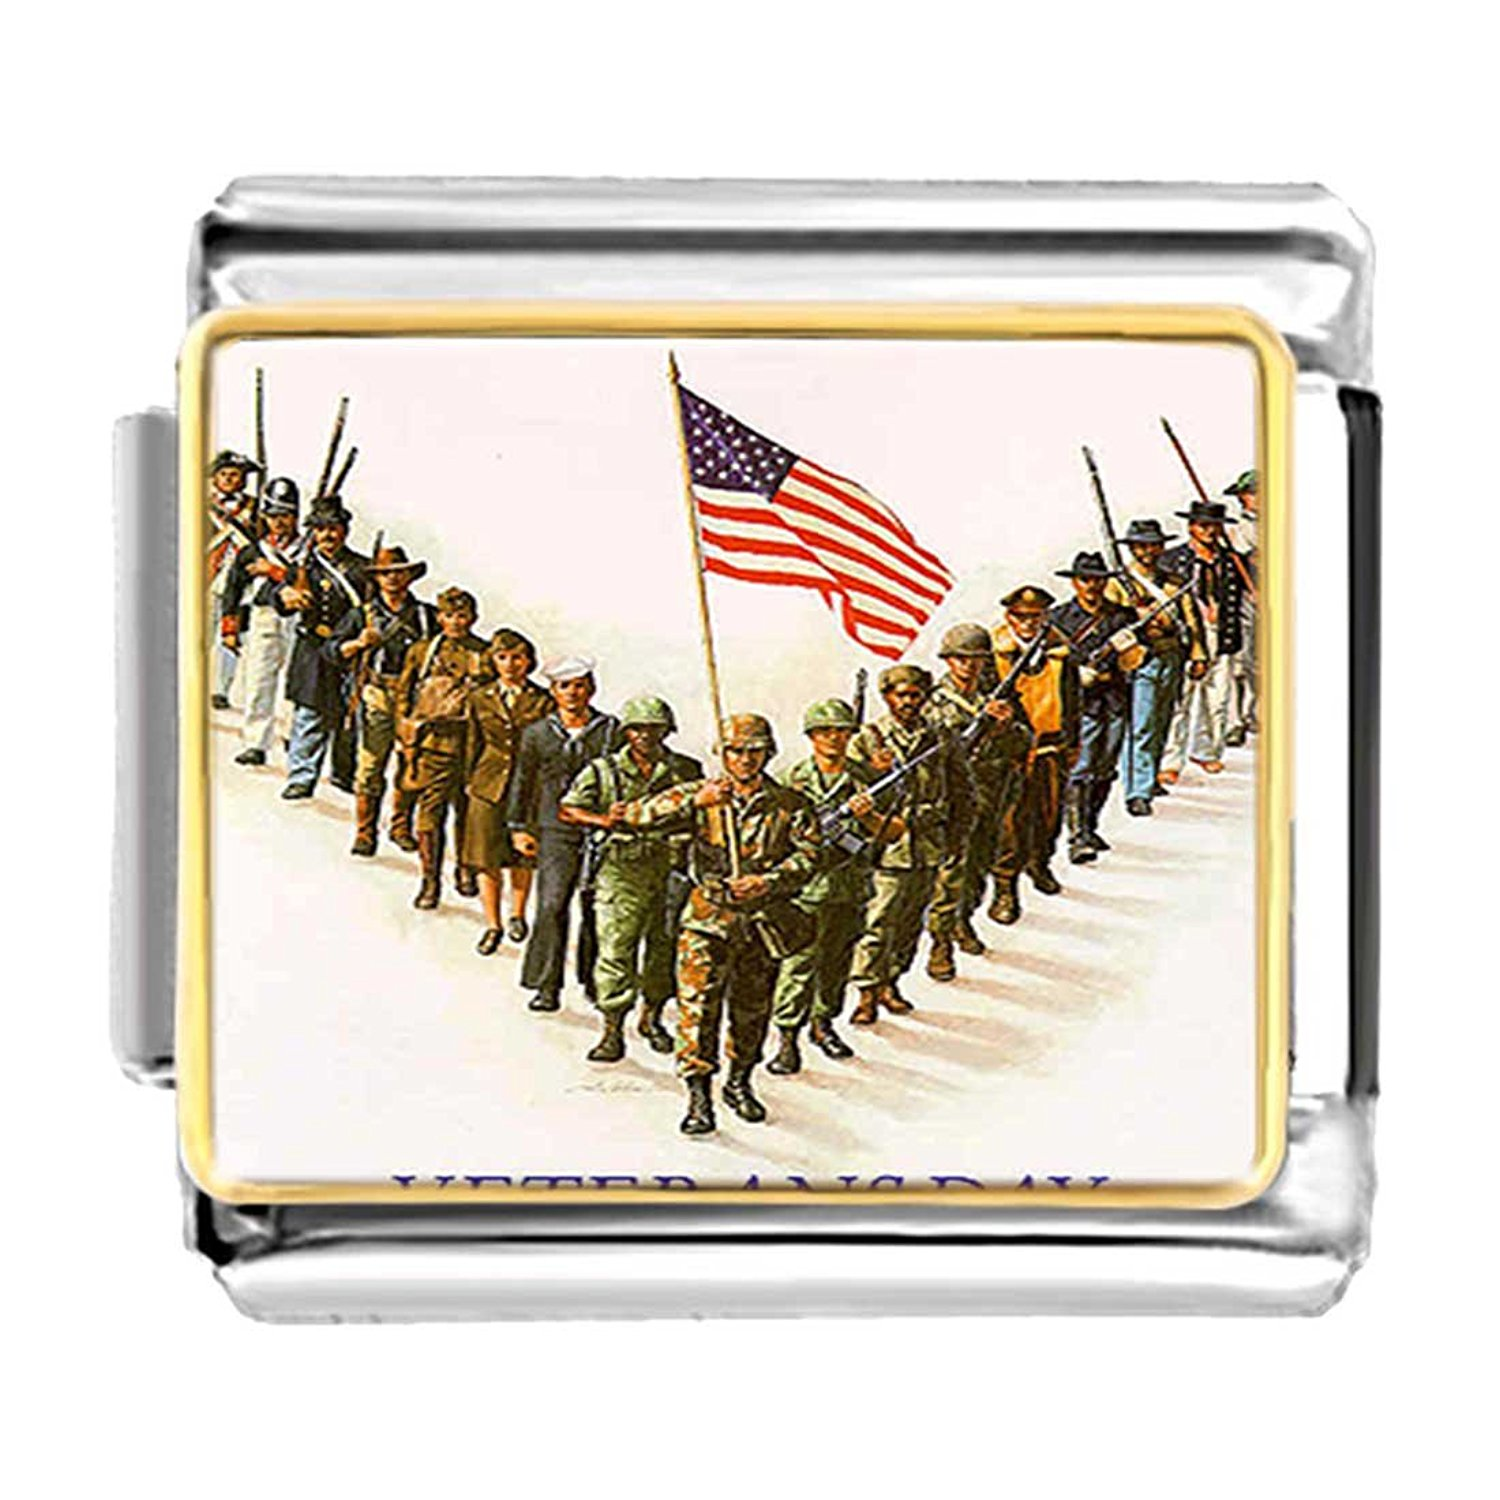 GiftJewelryShop Gold Plated Veterans Day American flag military army Bracelet Link Photo Italian Charms